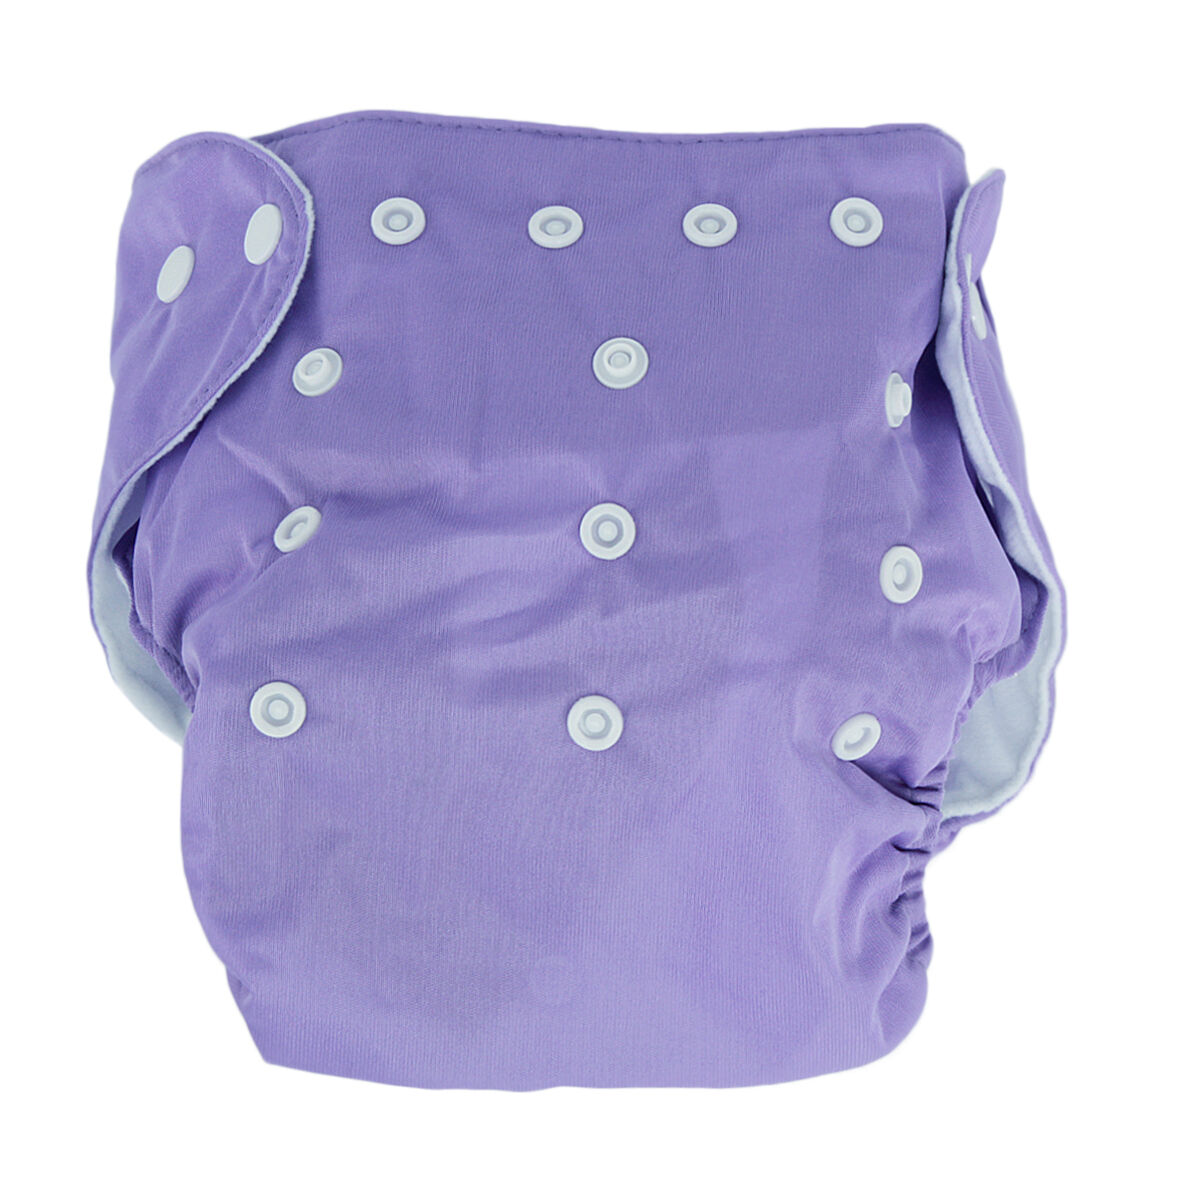 5pcs+ 5Inserts Adjustable Reusable Baby Washable Infant Nappy Soft Cloth Diapers Purple